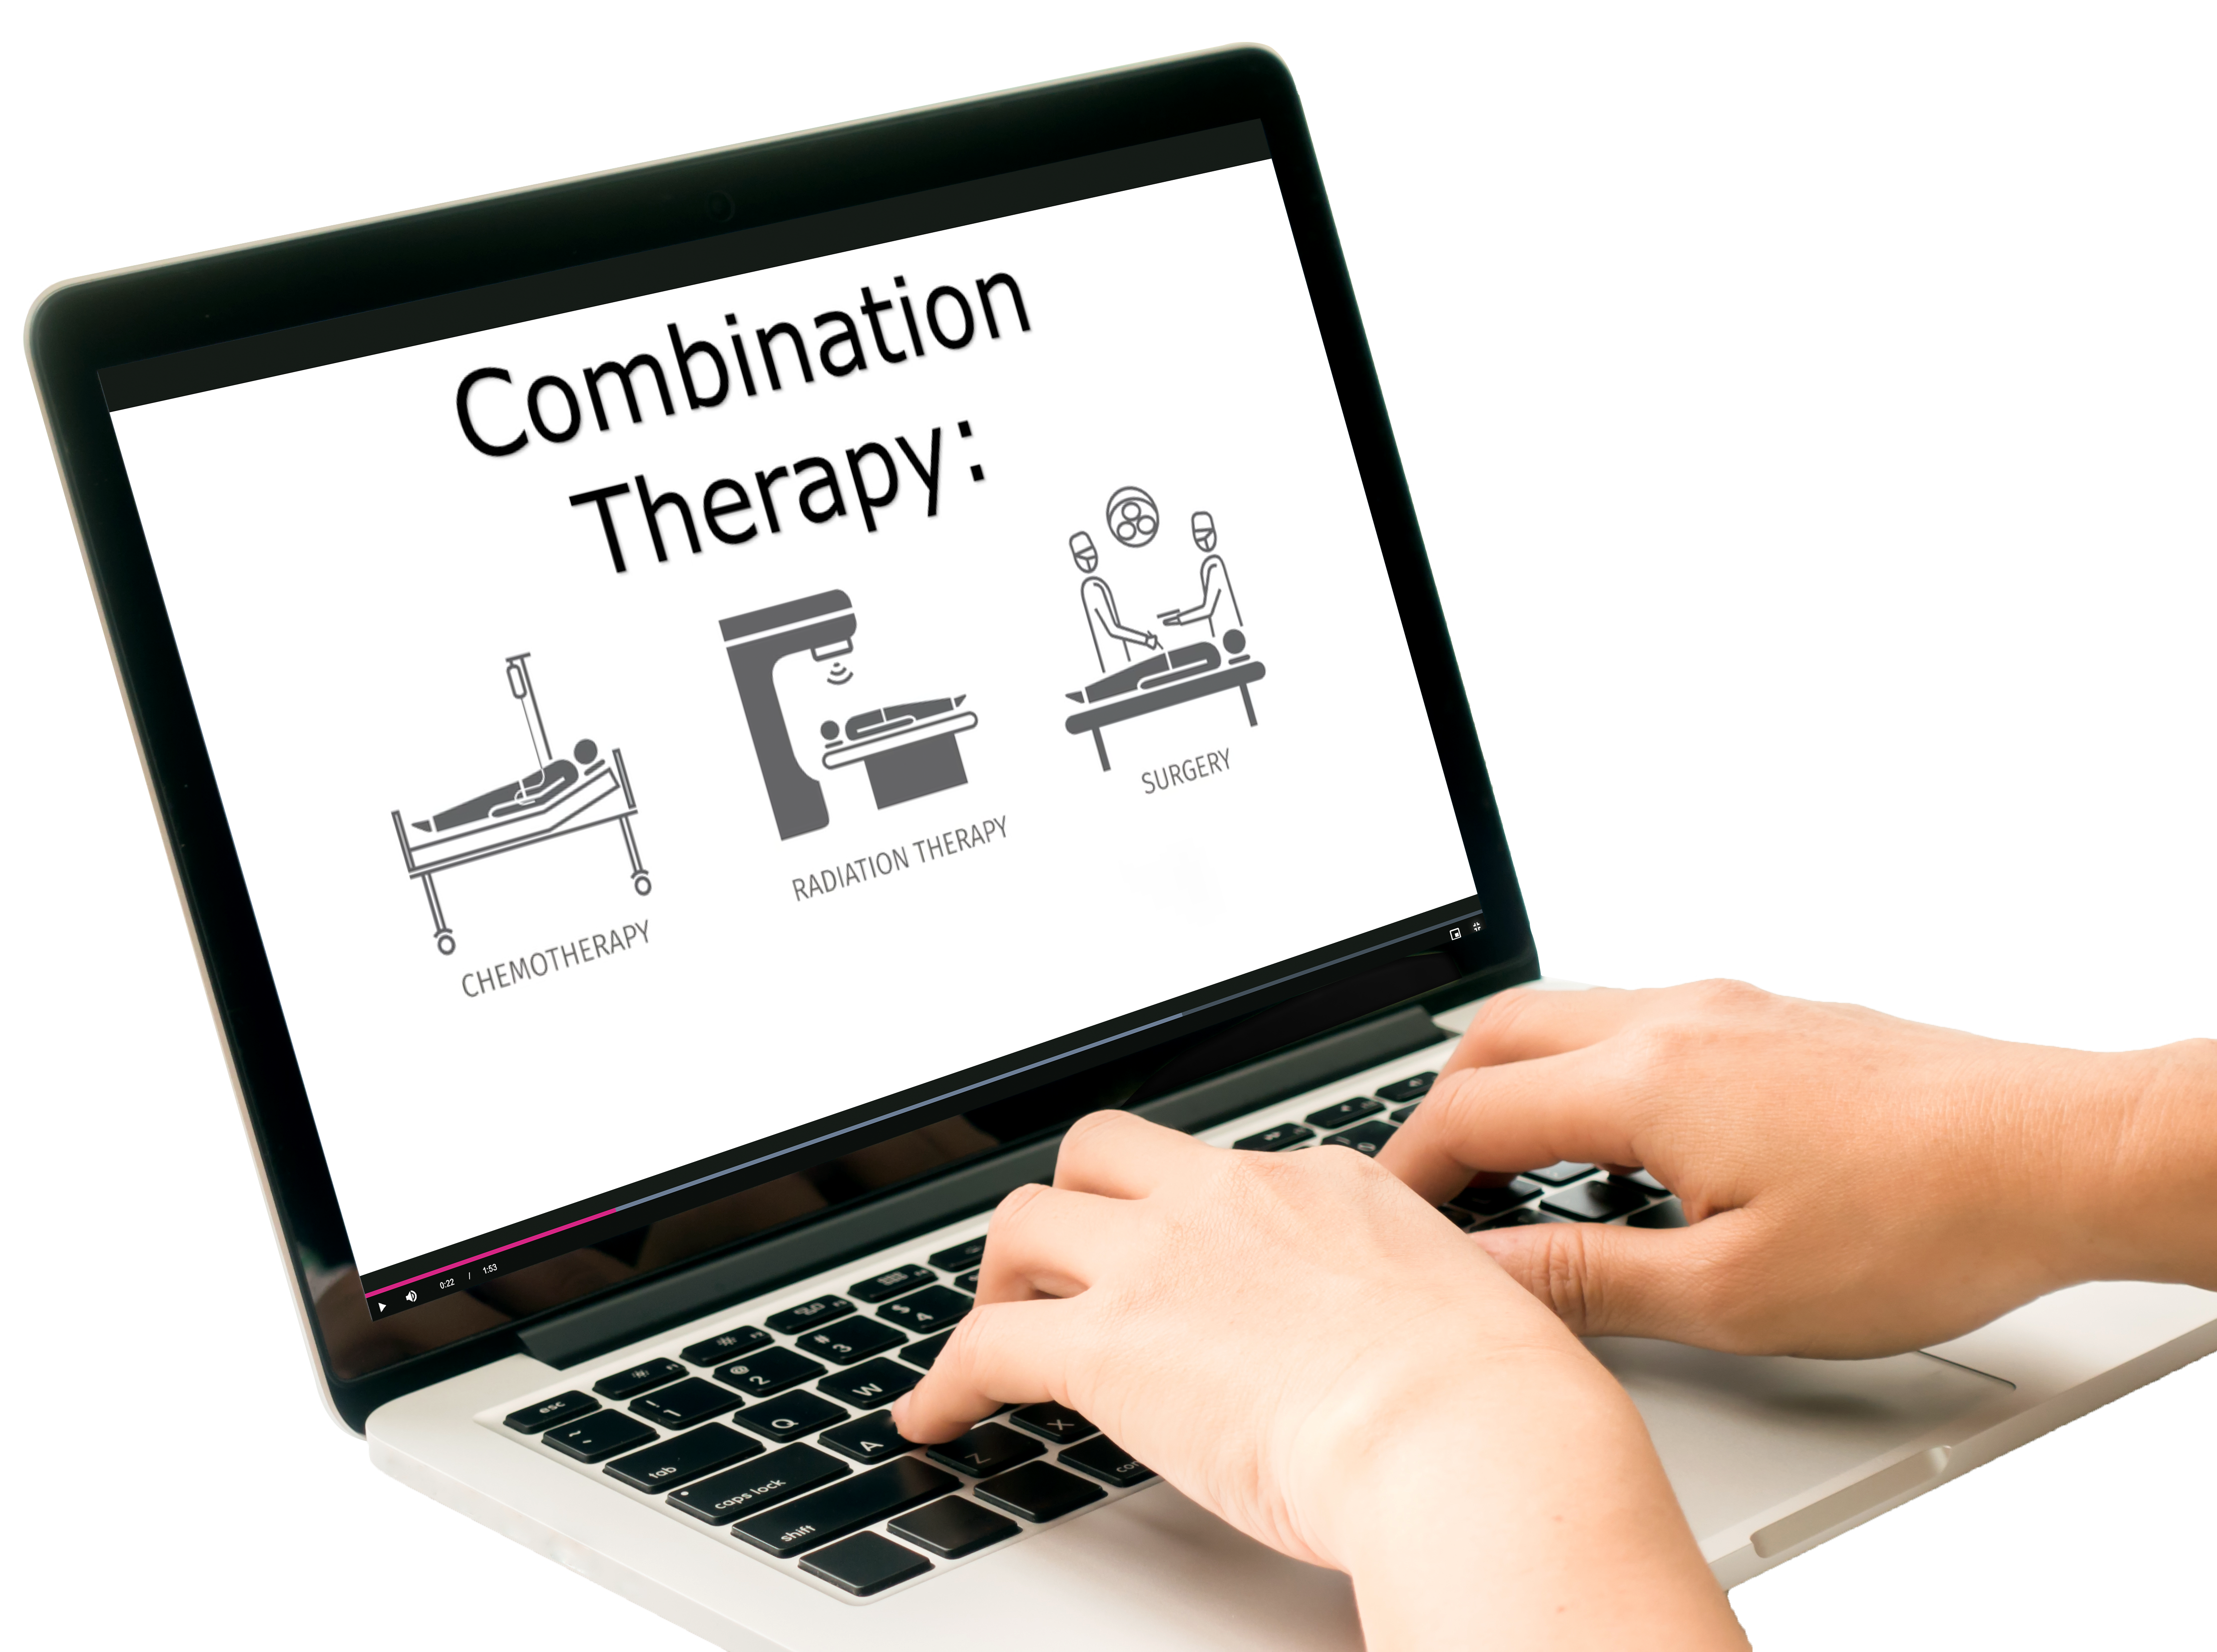 oncology_solutions webpage